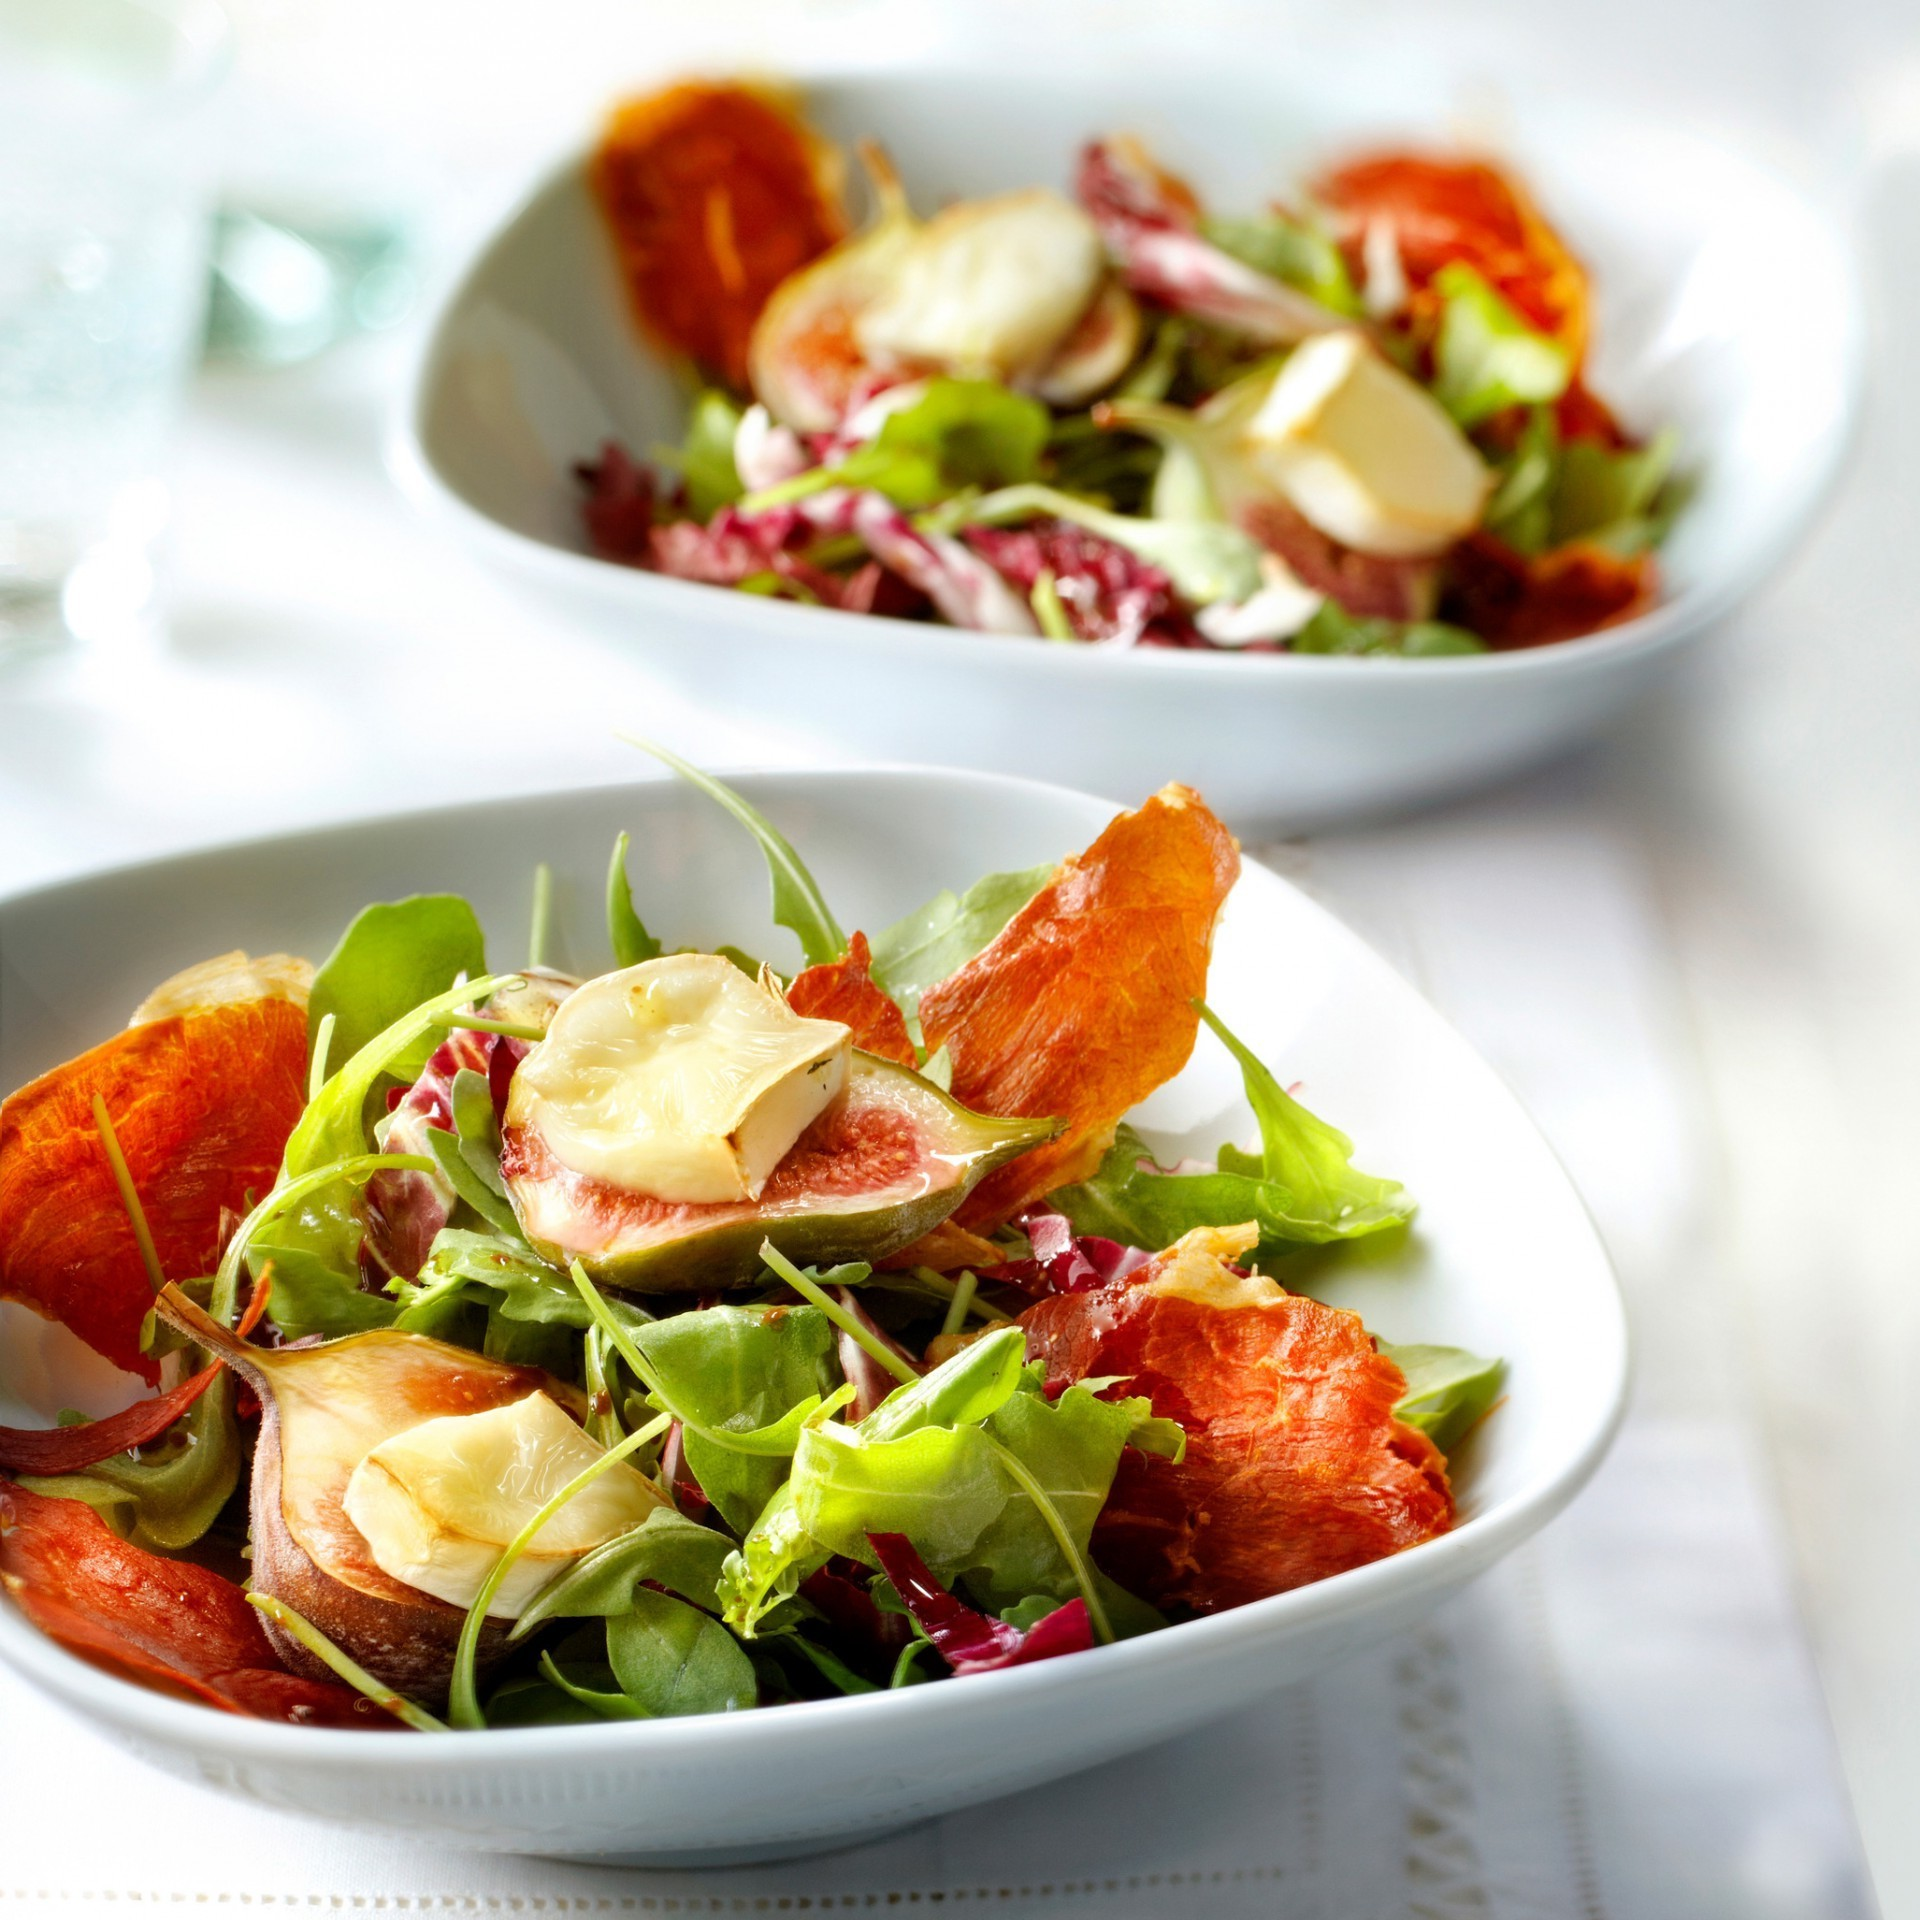 Rucola salad with gratin figs